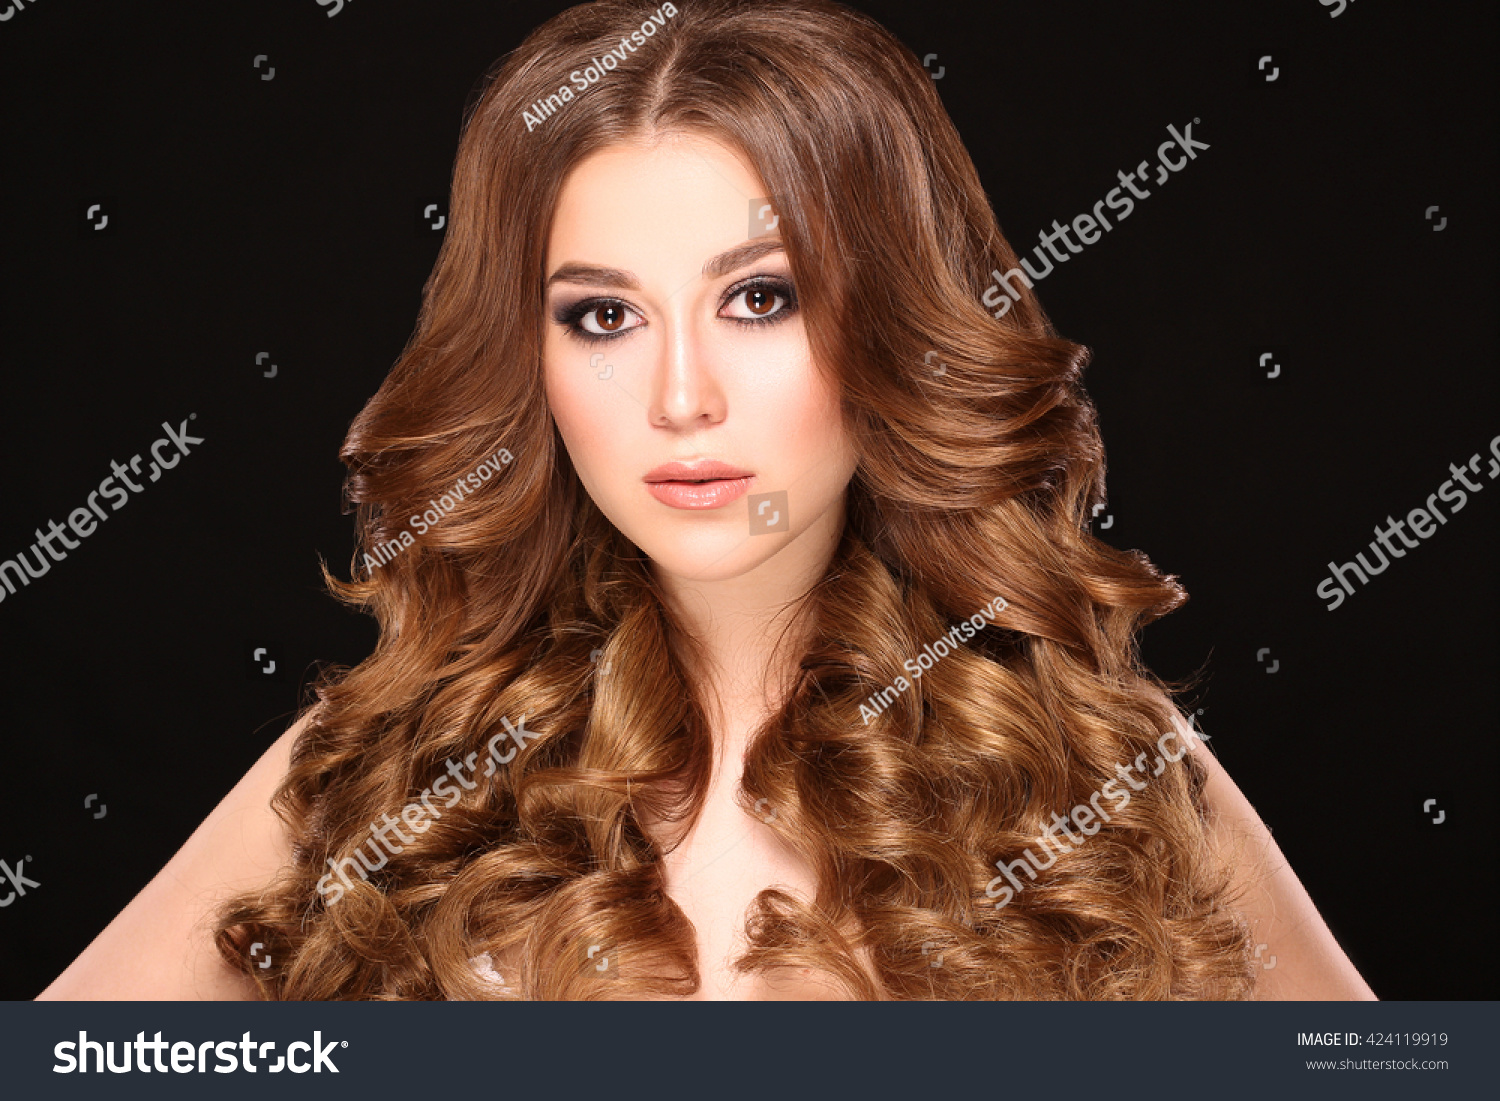 Beauty Woman Face Closeup Isolated On Black Background Stock Photo ...